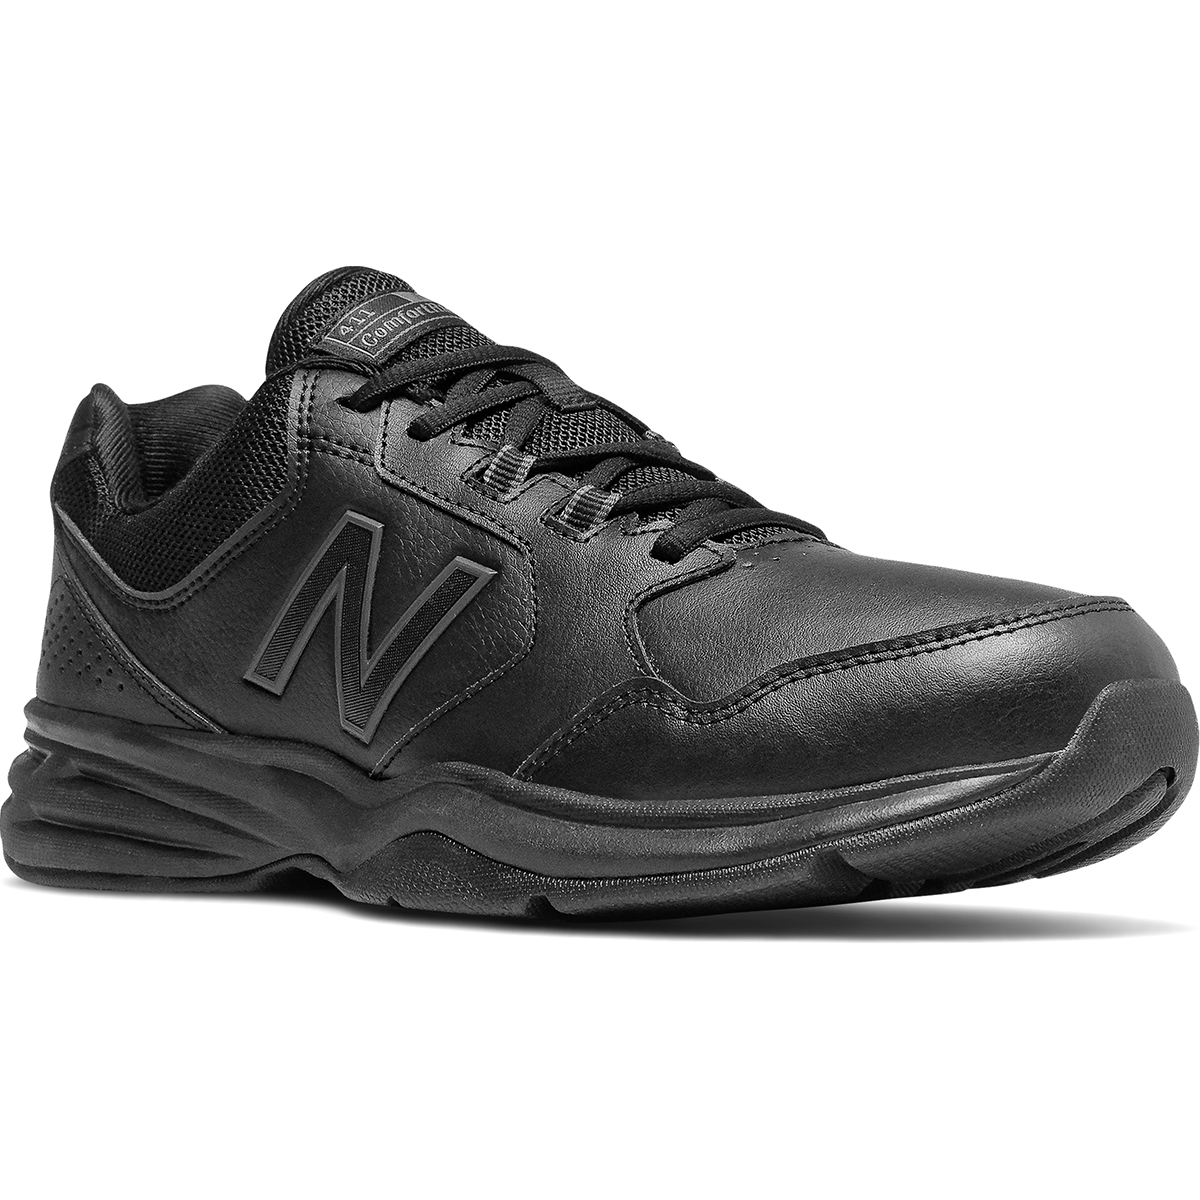 New Balance Men's 411 Walking Shoes - Black, 12